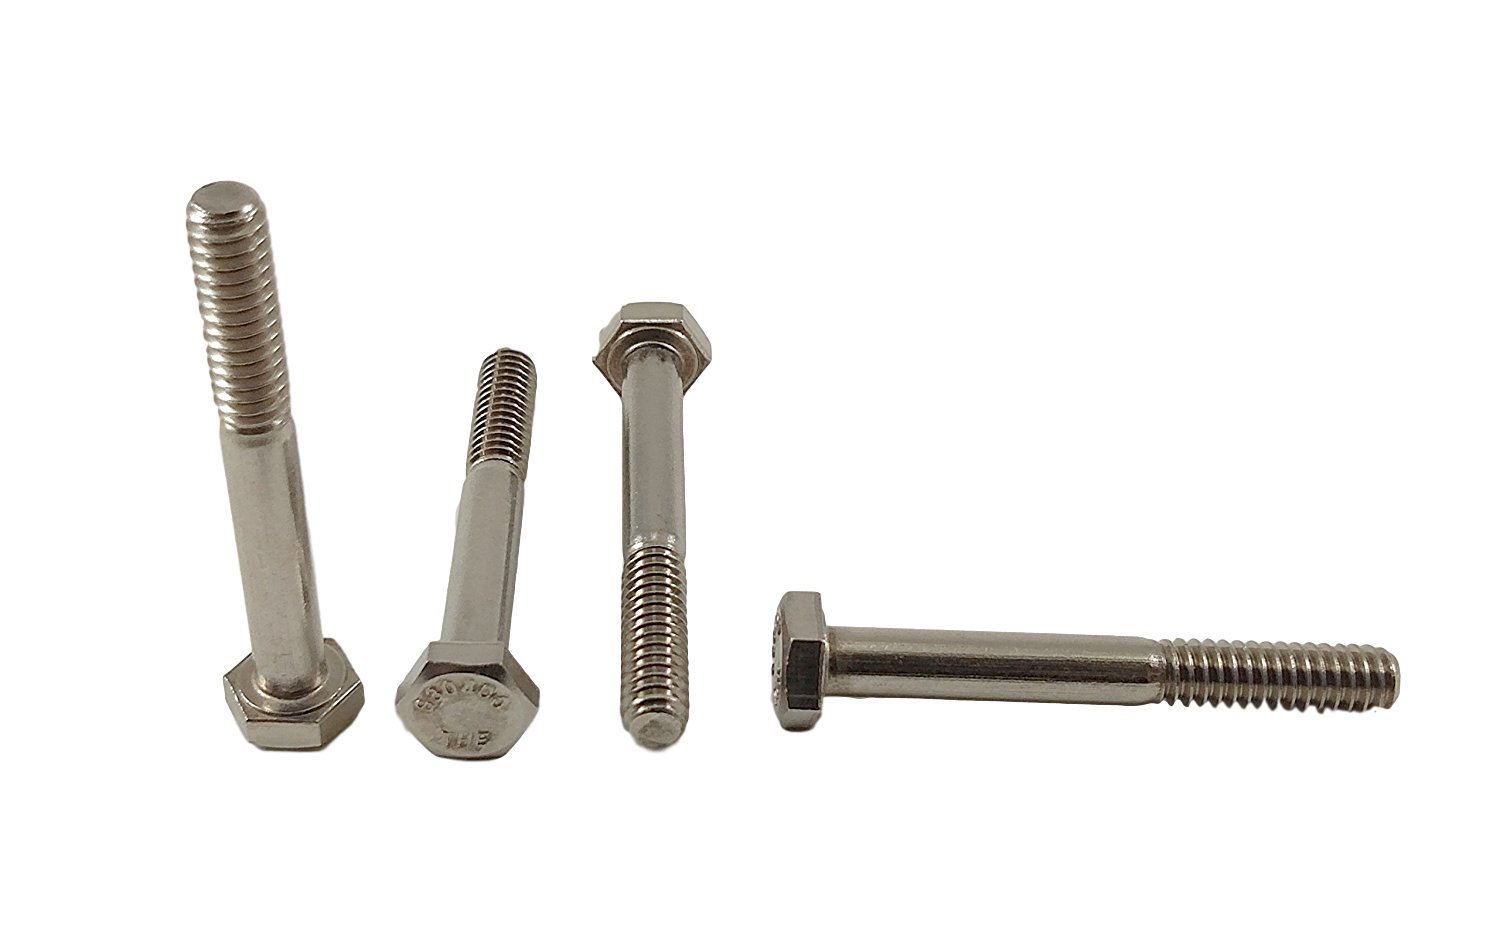 Stainless 1/4-20 x 2 Hex Head Bolts (1/2 To 5'' Length in Listing), 304 Stainless Steel (1/4-20x2(100pcs)) by Chenango Supply Co., Inc. (Image #2)